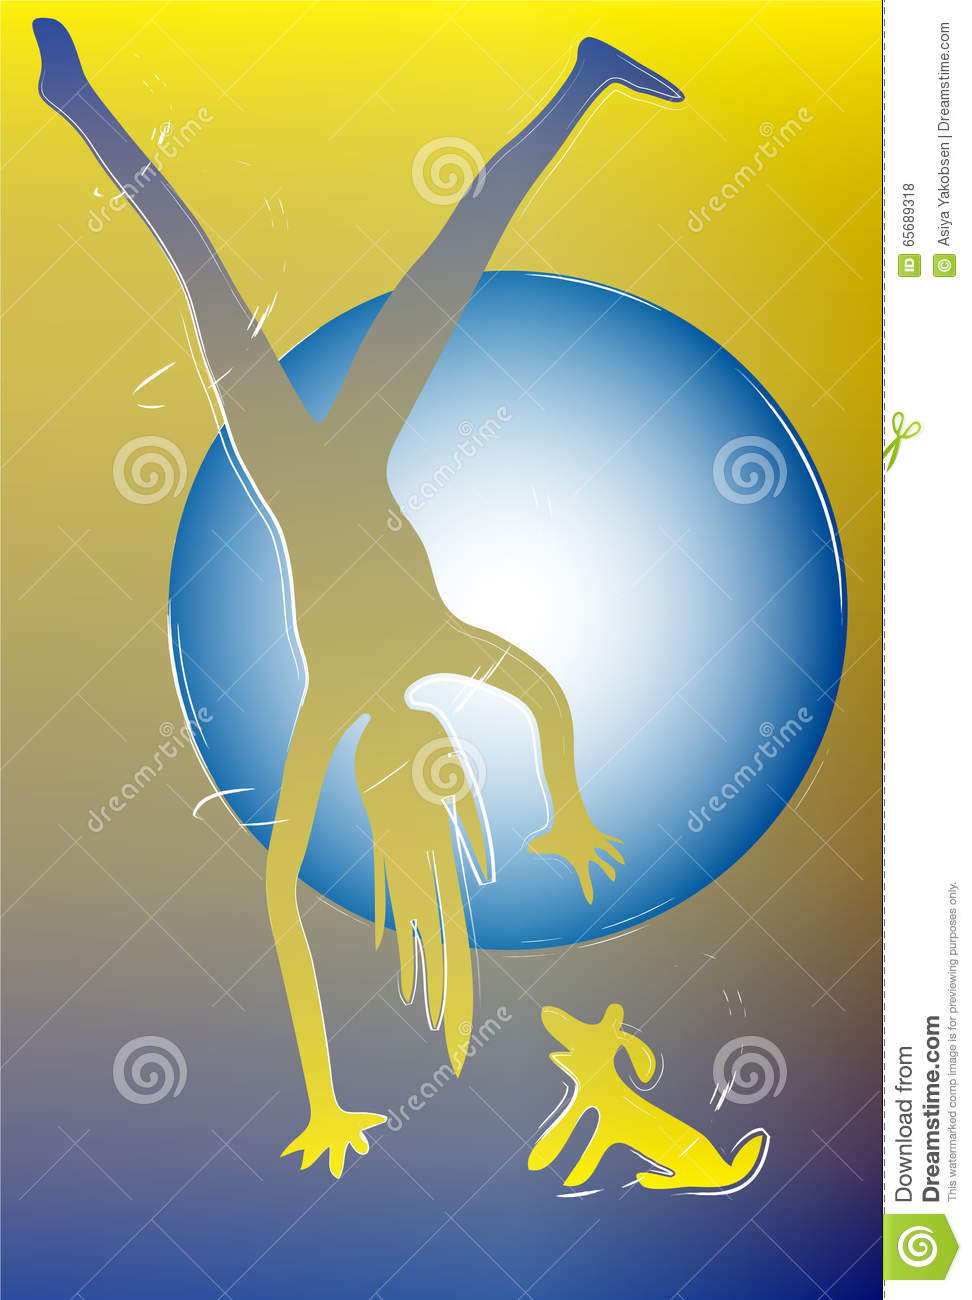 Sport As A Way Of Life. Strong Body. Light Soul Stock Illustration - Illustration of light, confident: 65689318